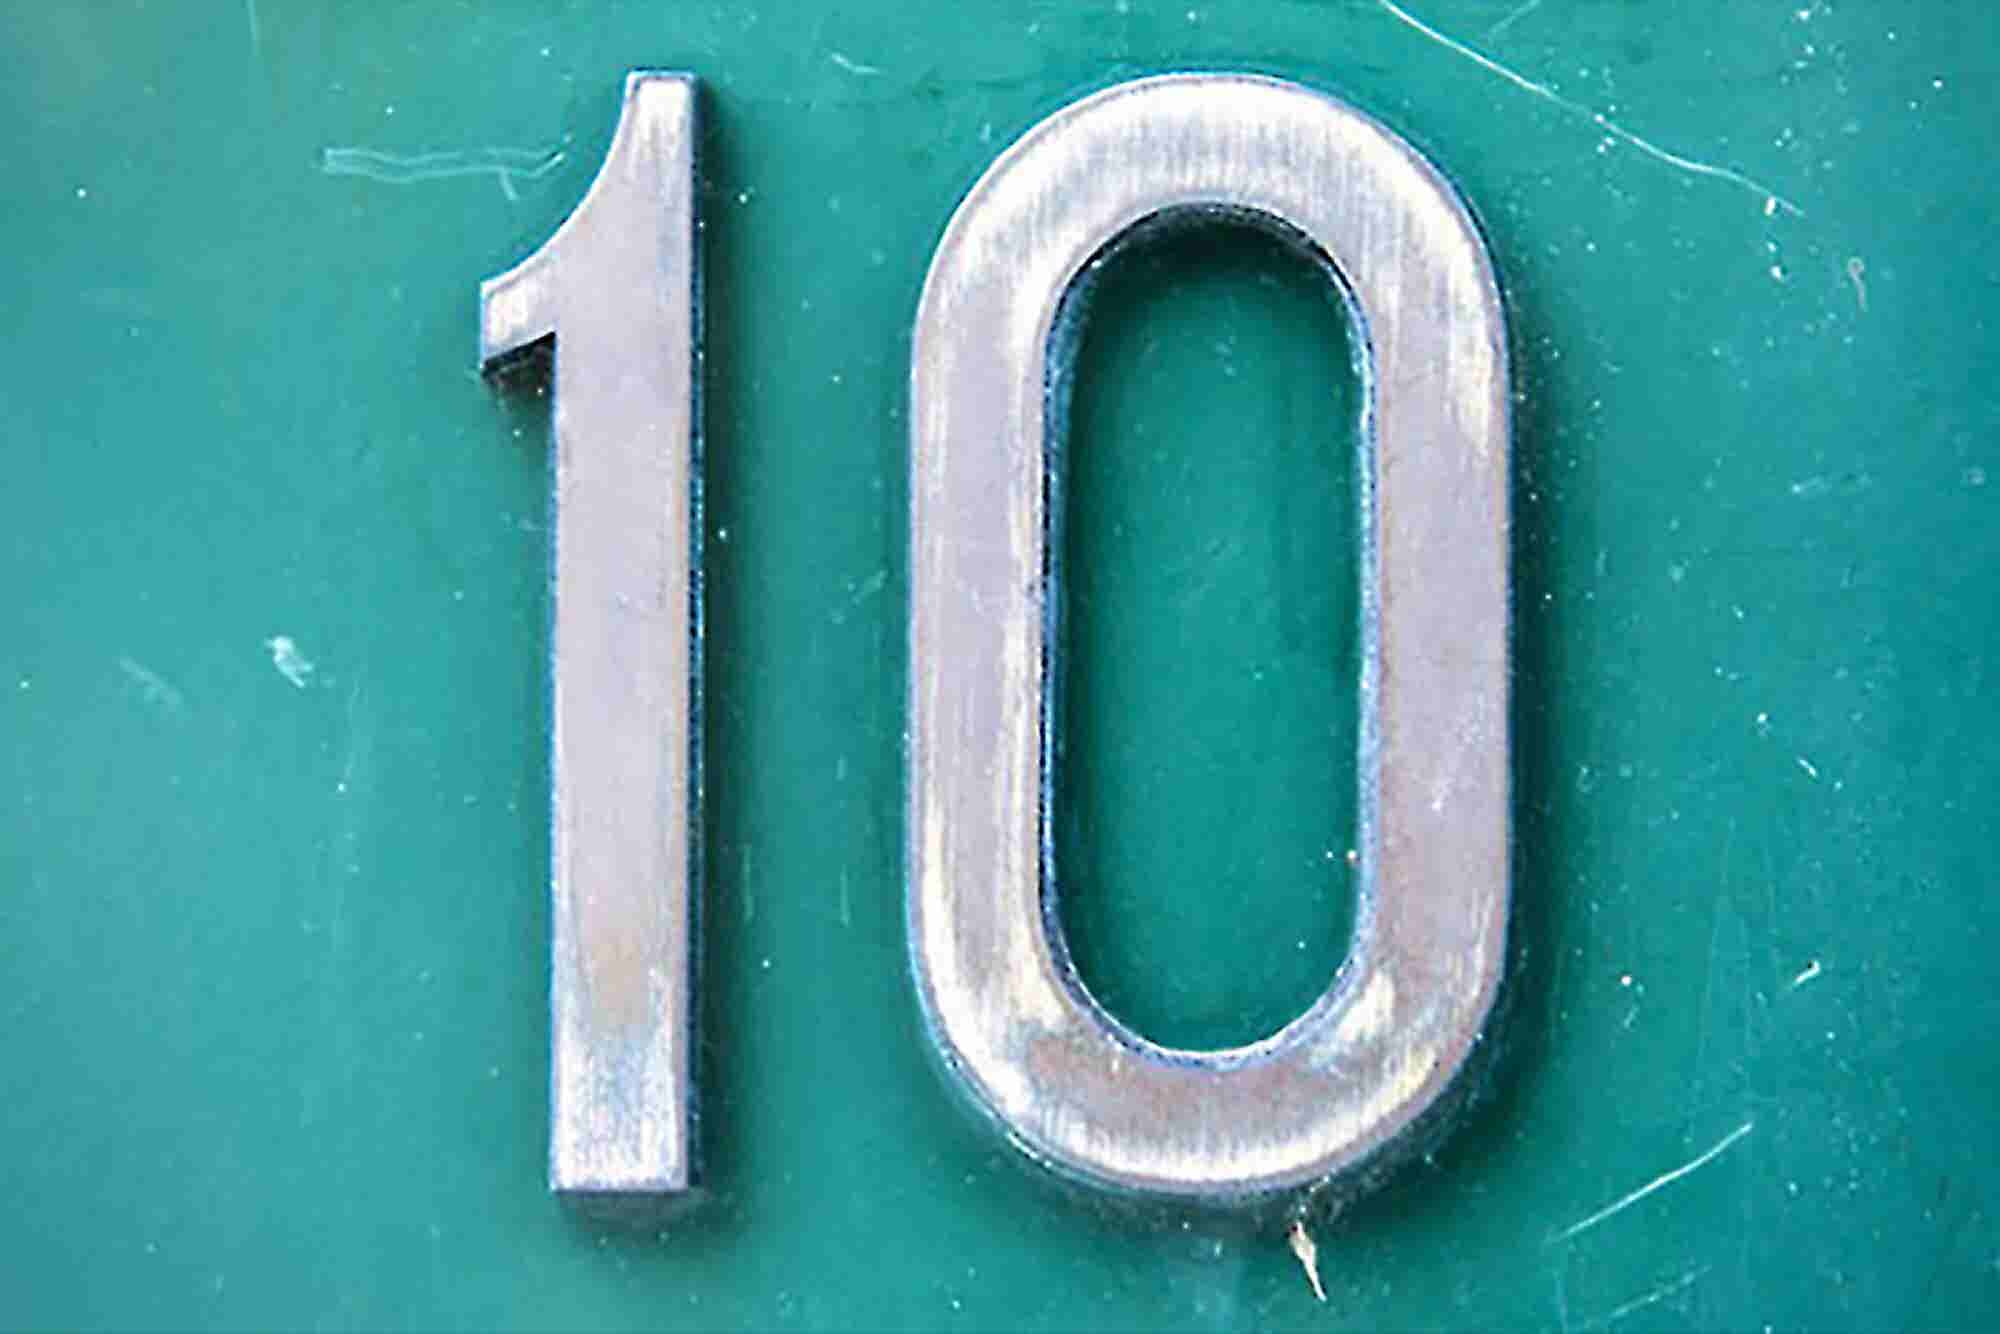 10 Insights from 10 Years Running a Business